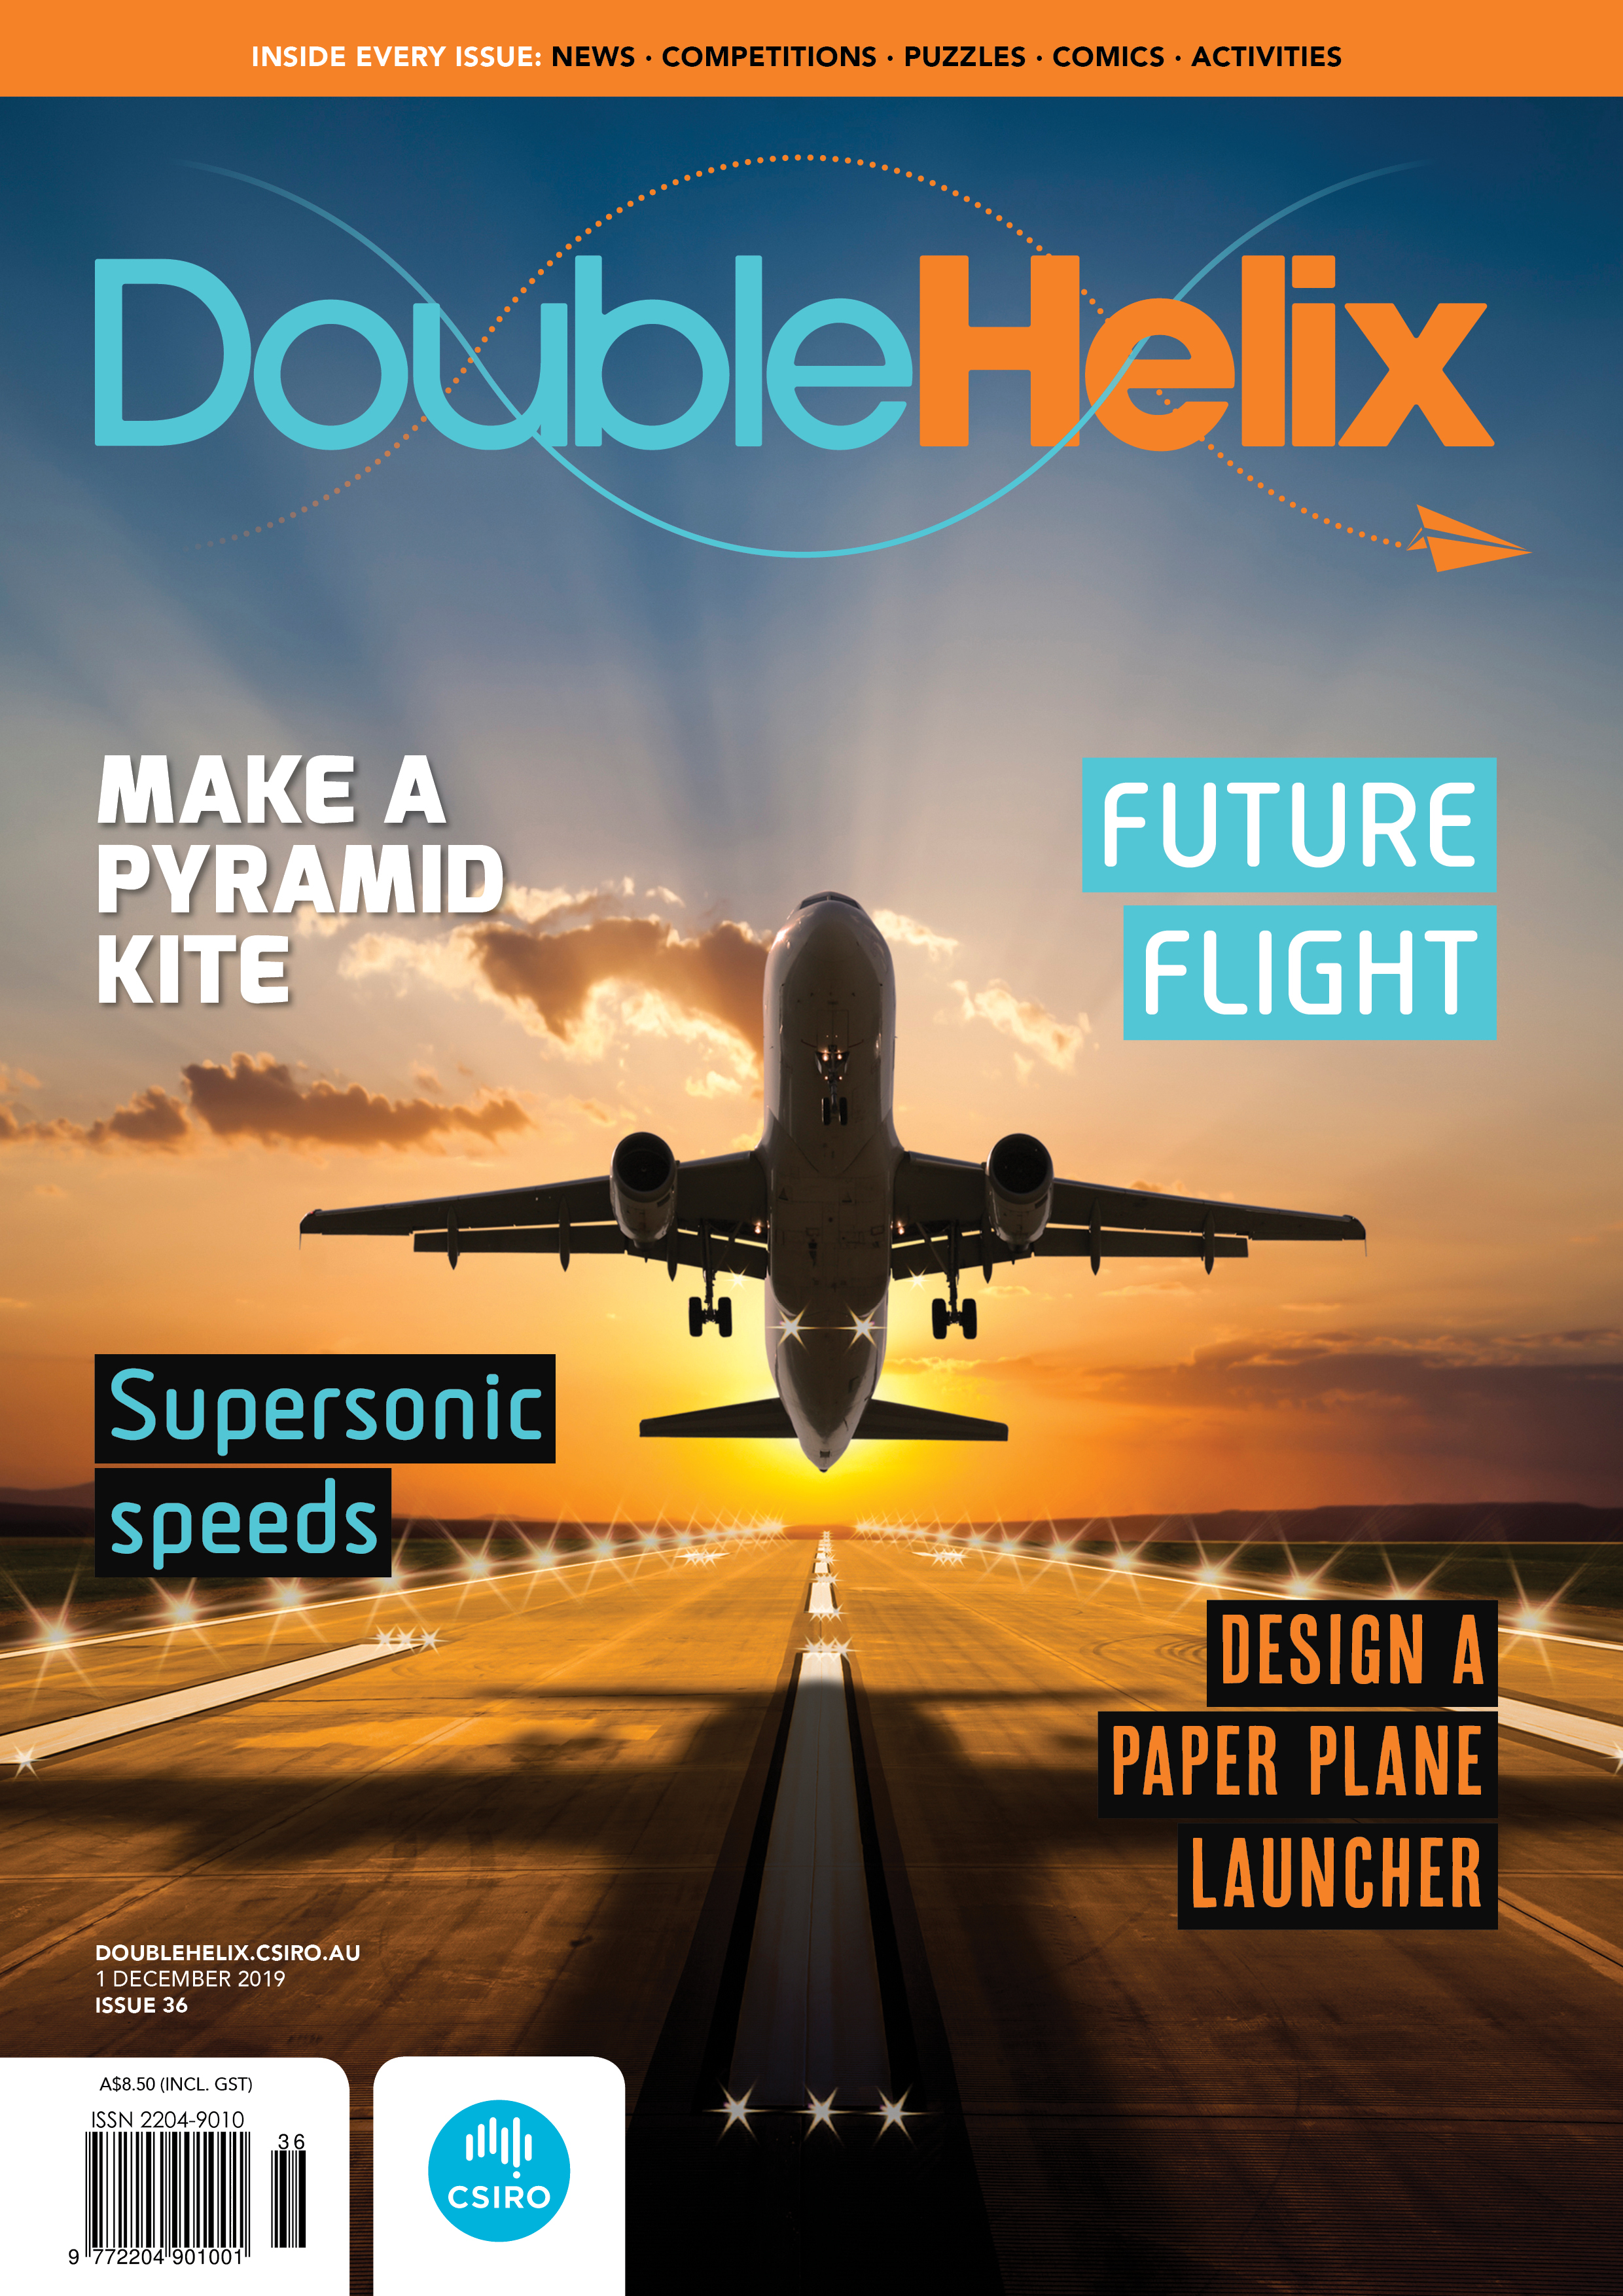 Cover of Double Helix magazine featuring an image of a plane taking off from a runway with a sunset behind it